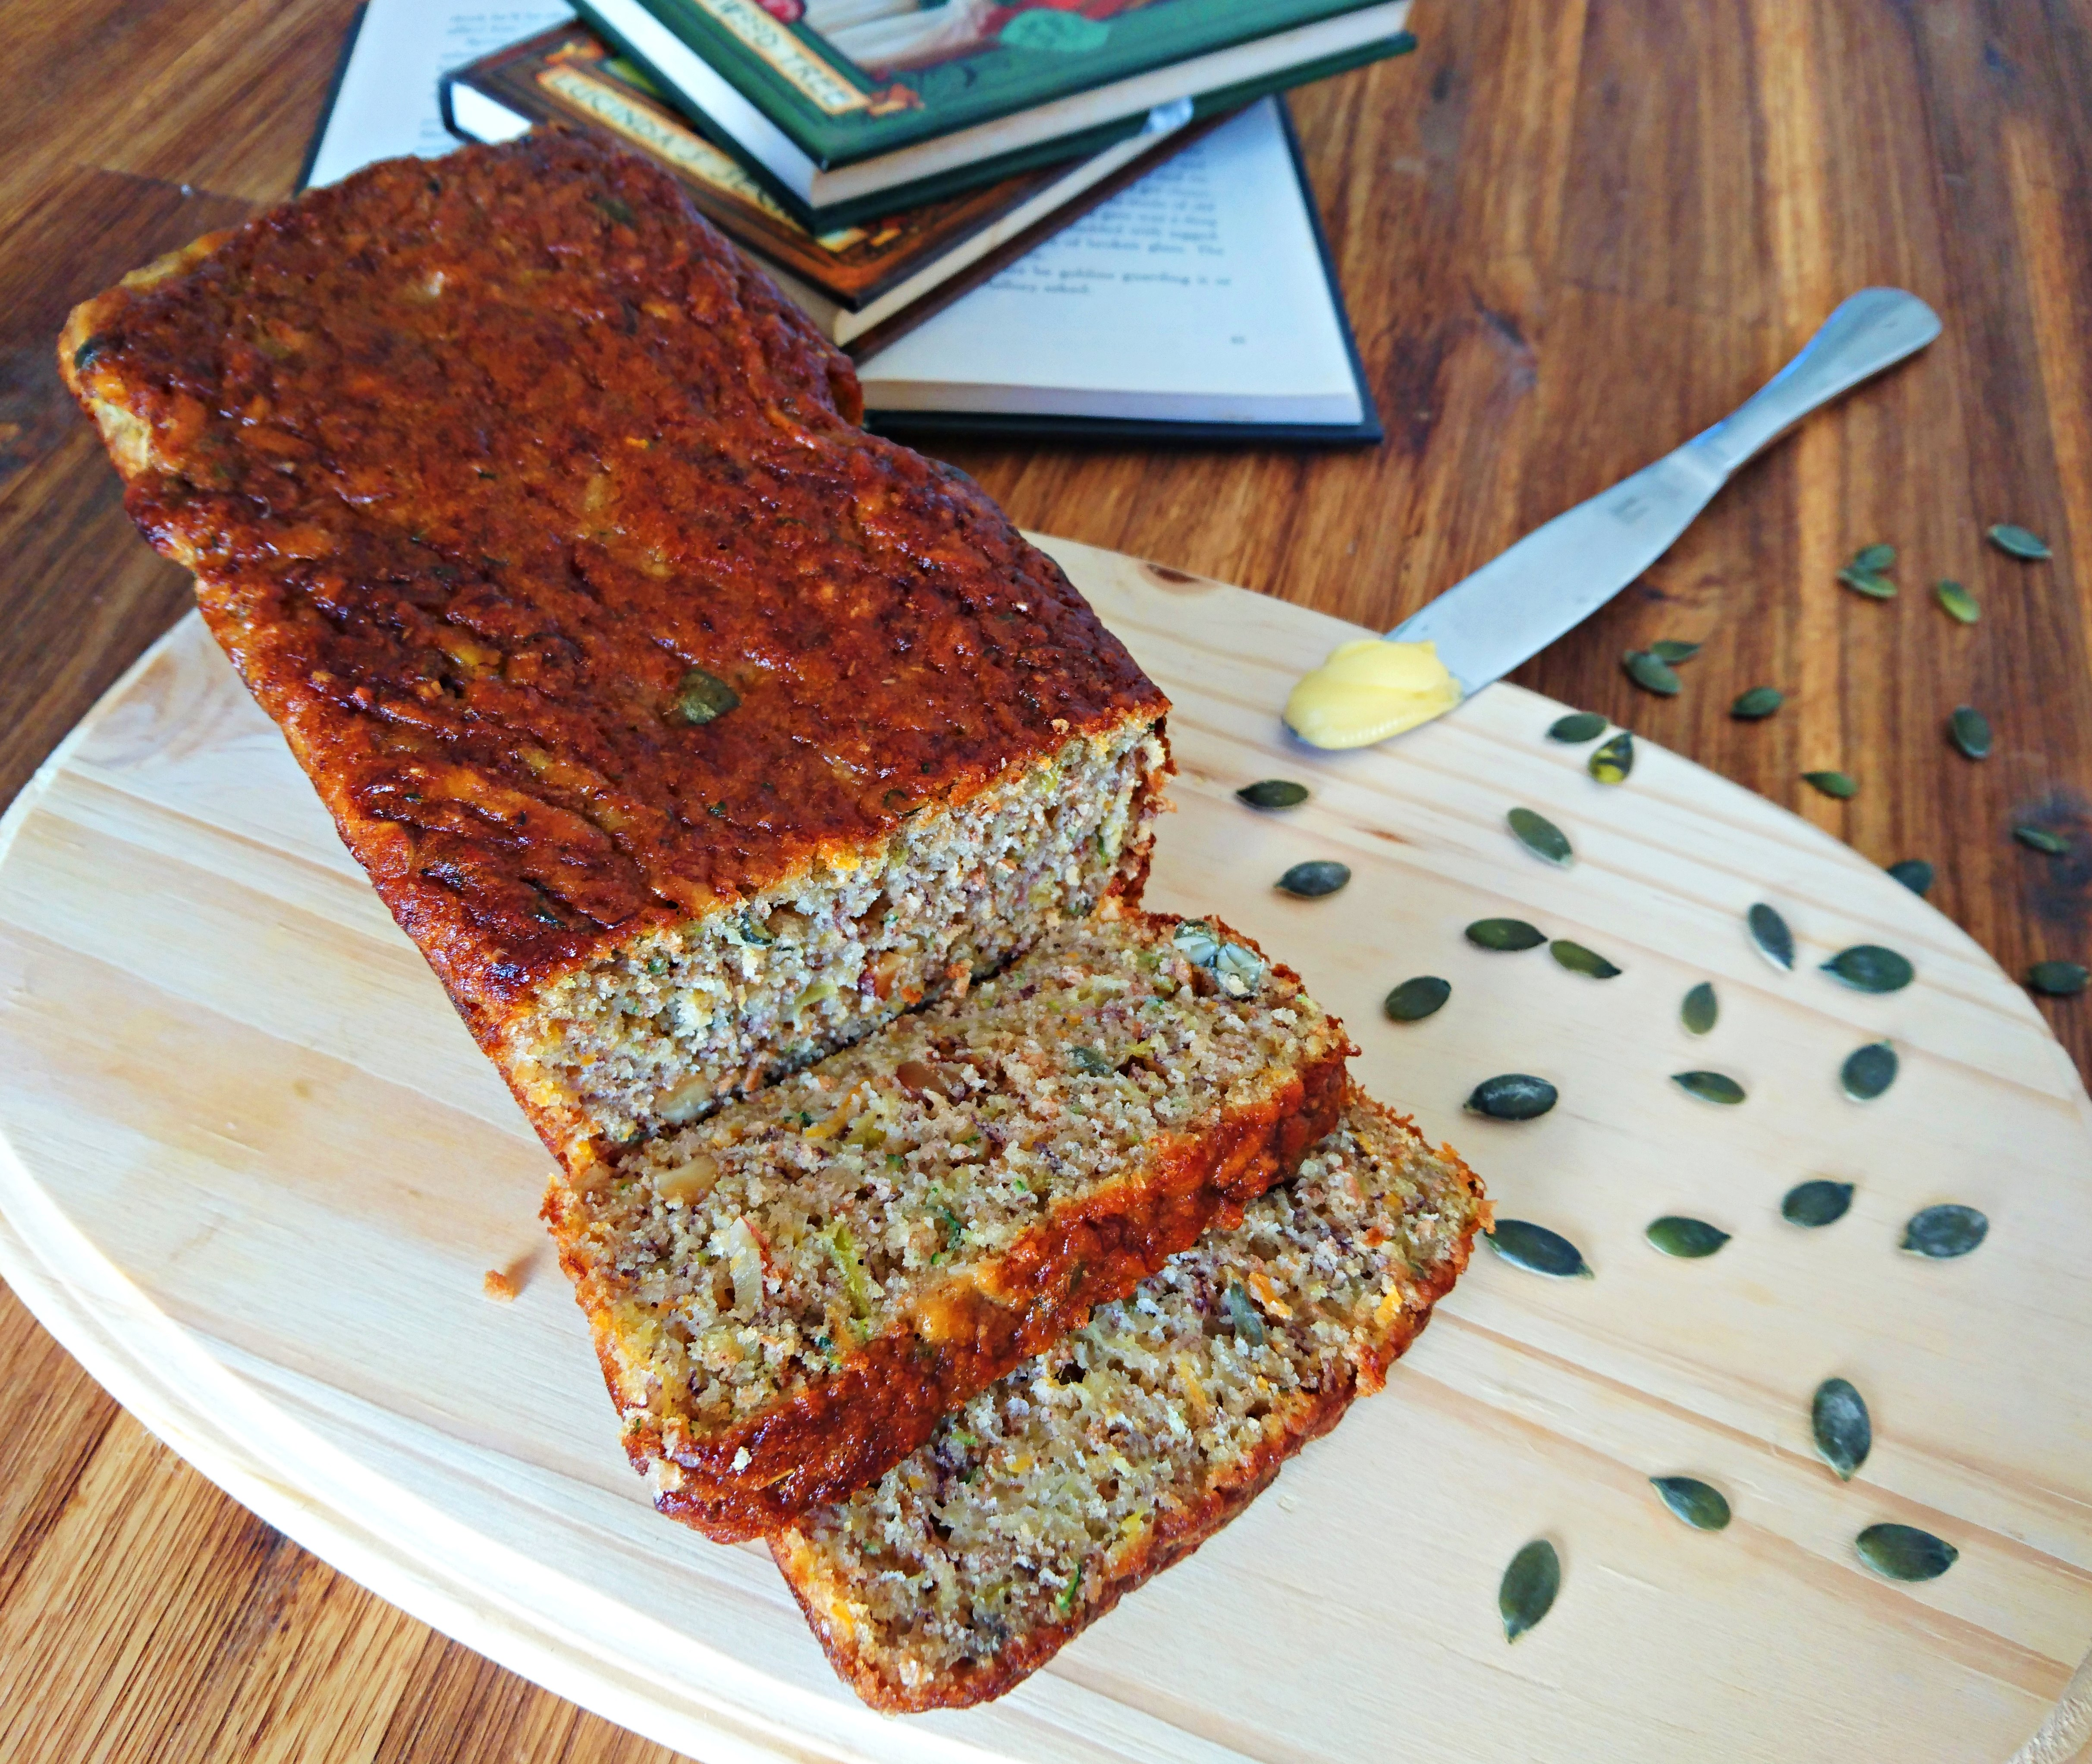 Fruit and Veg Health Loaf